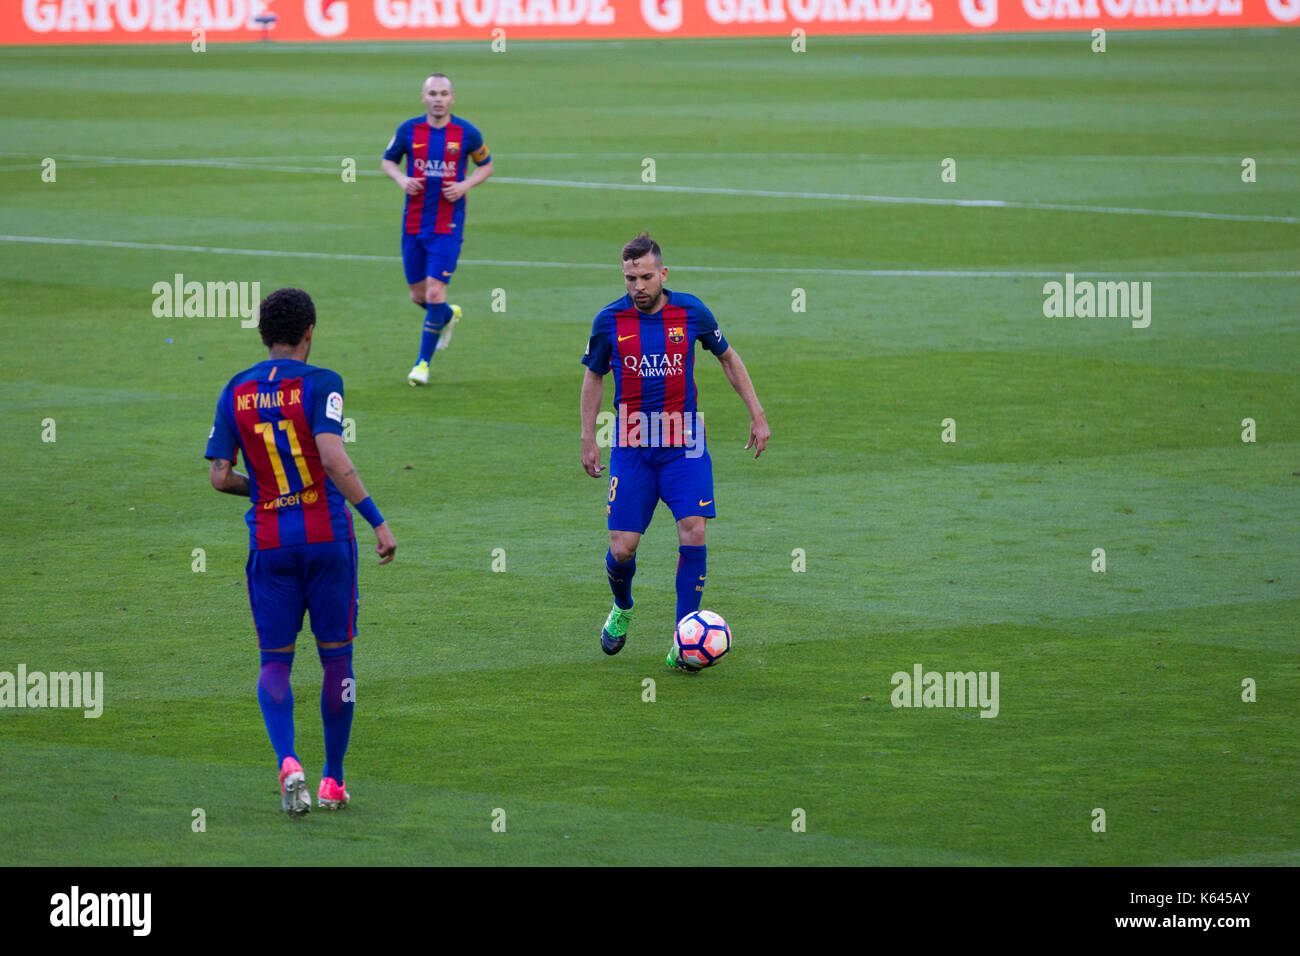 6/5/17 Barcelona v Villarreal football league match at the Camp Nou stadium, Barcelona. Jordi Alba attacking with ball. - Stock Image